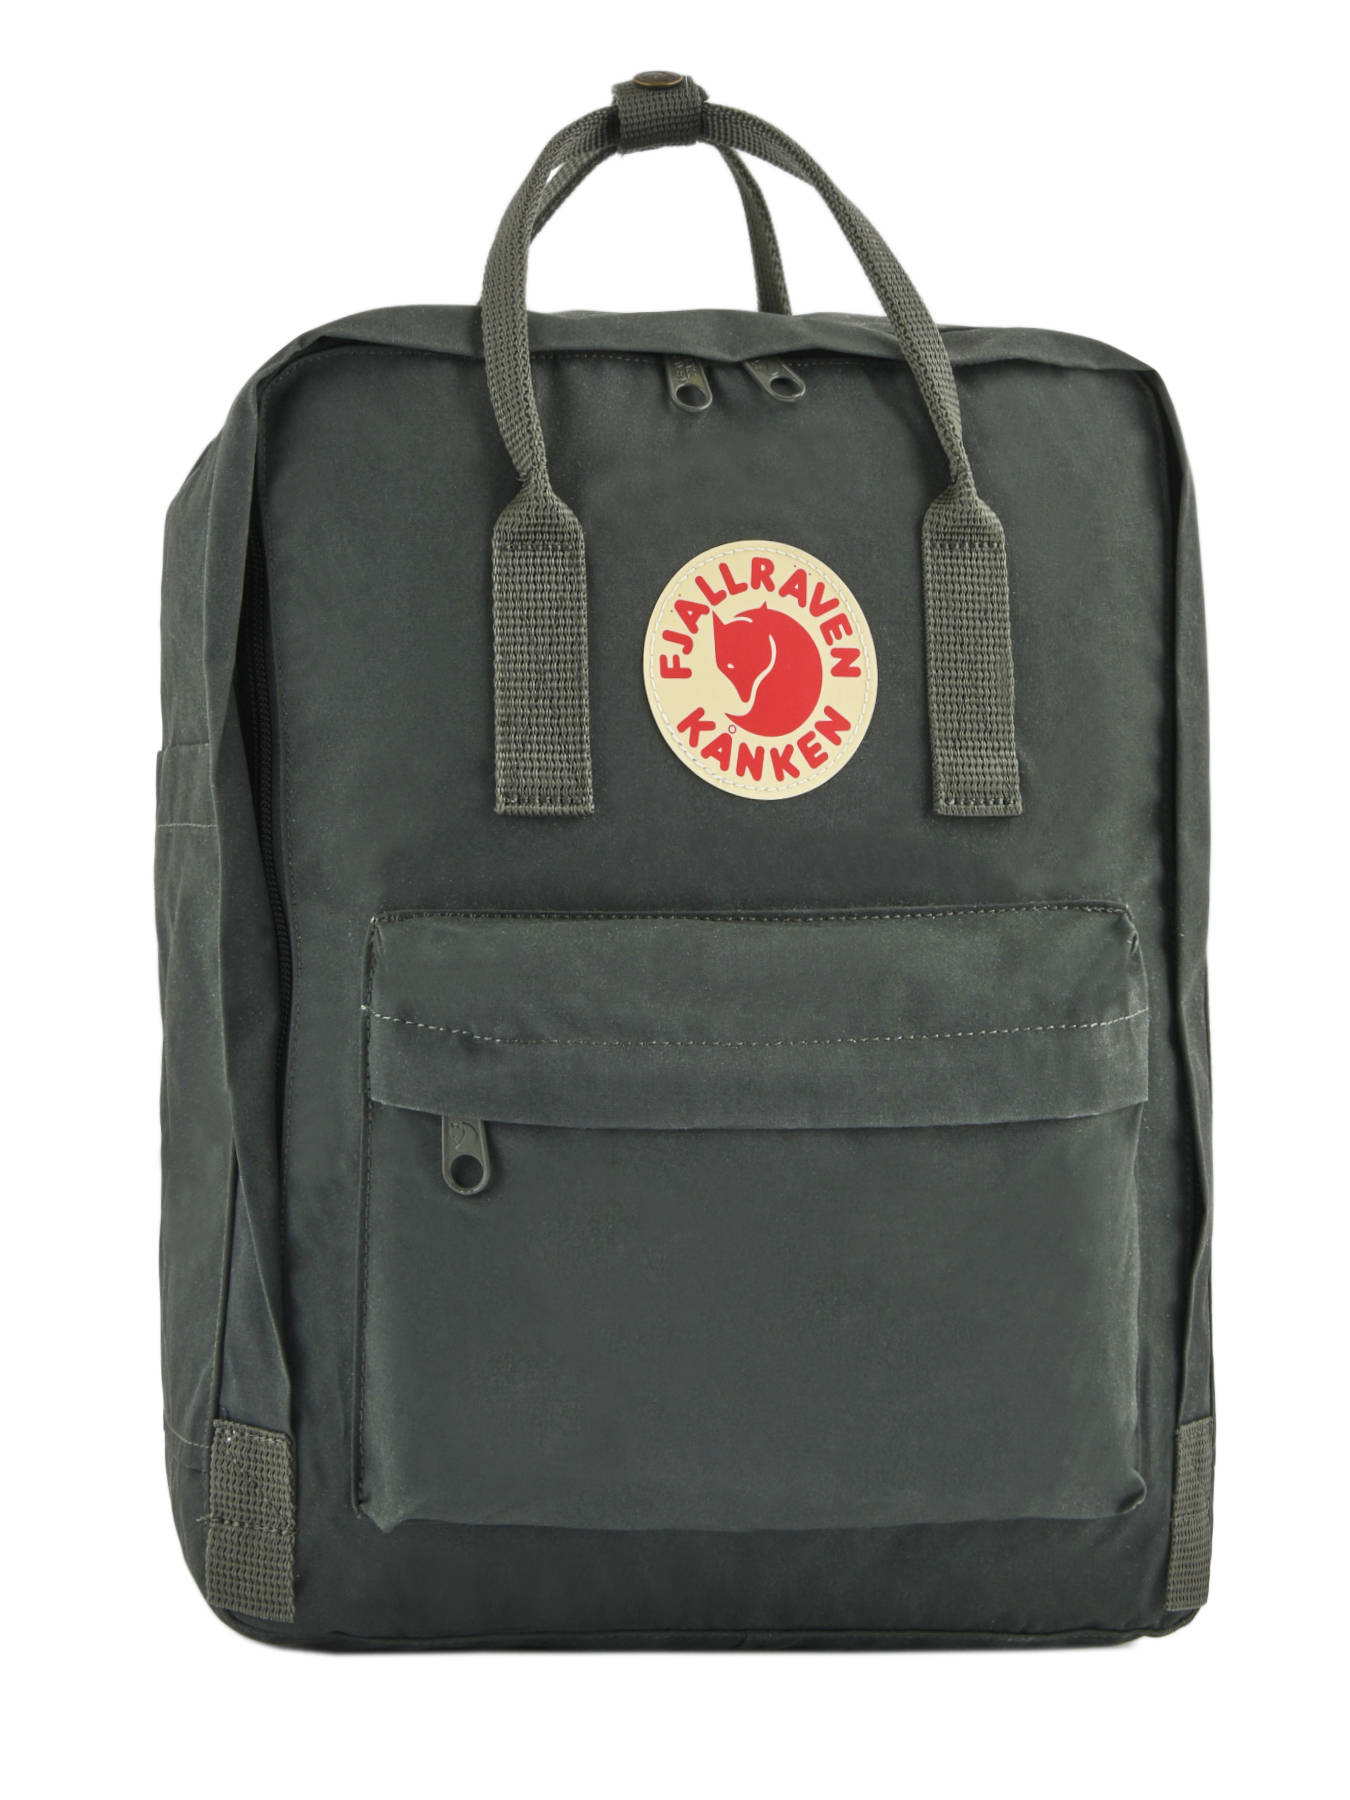 sac dos fjallraven kanken forestgreen ox en vente au meilleur prix. Black Bedroom Furniture Sets. Home Design Ideas